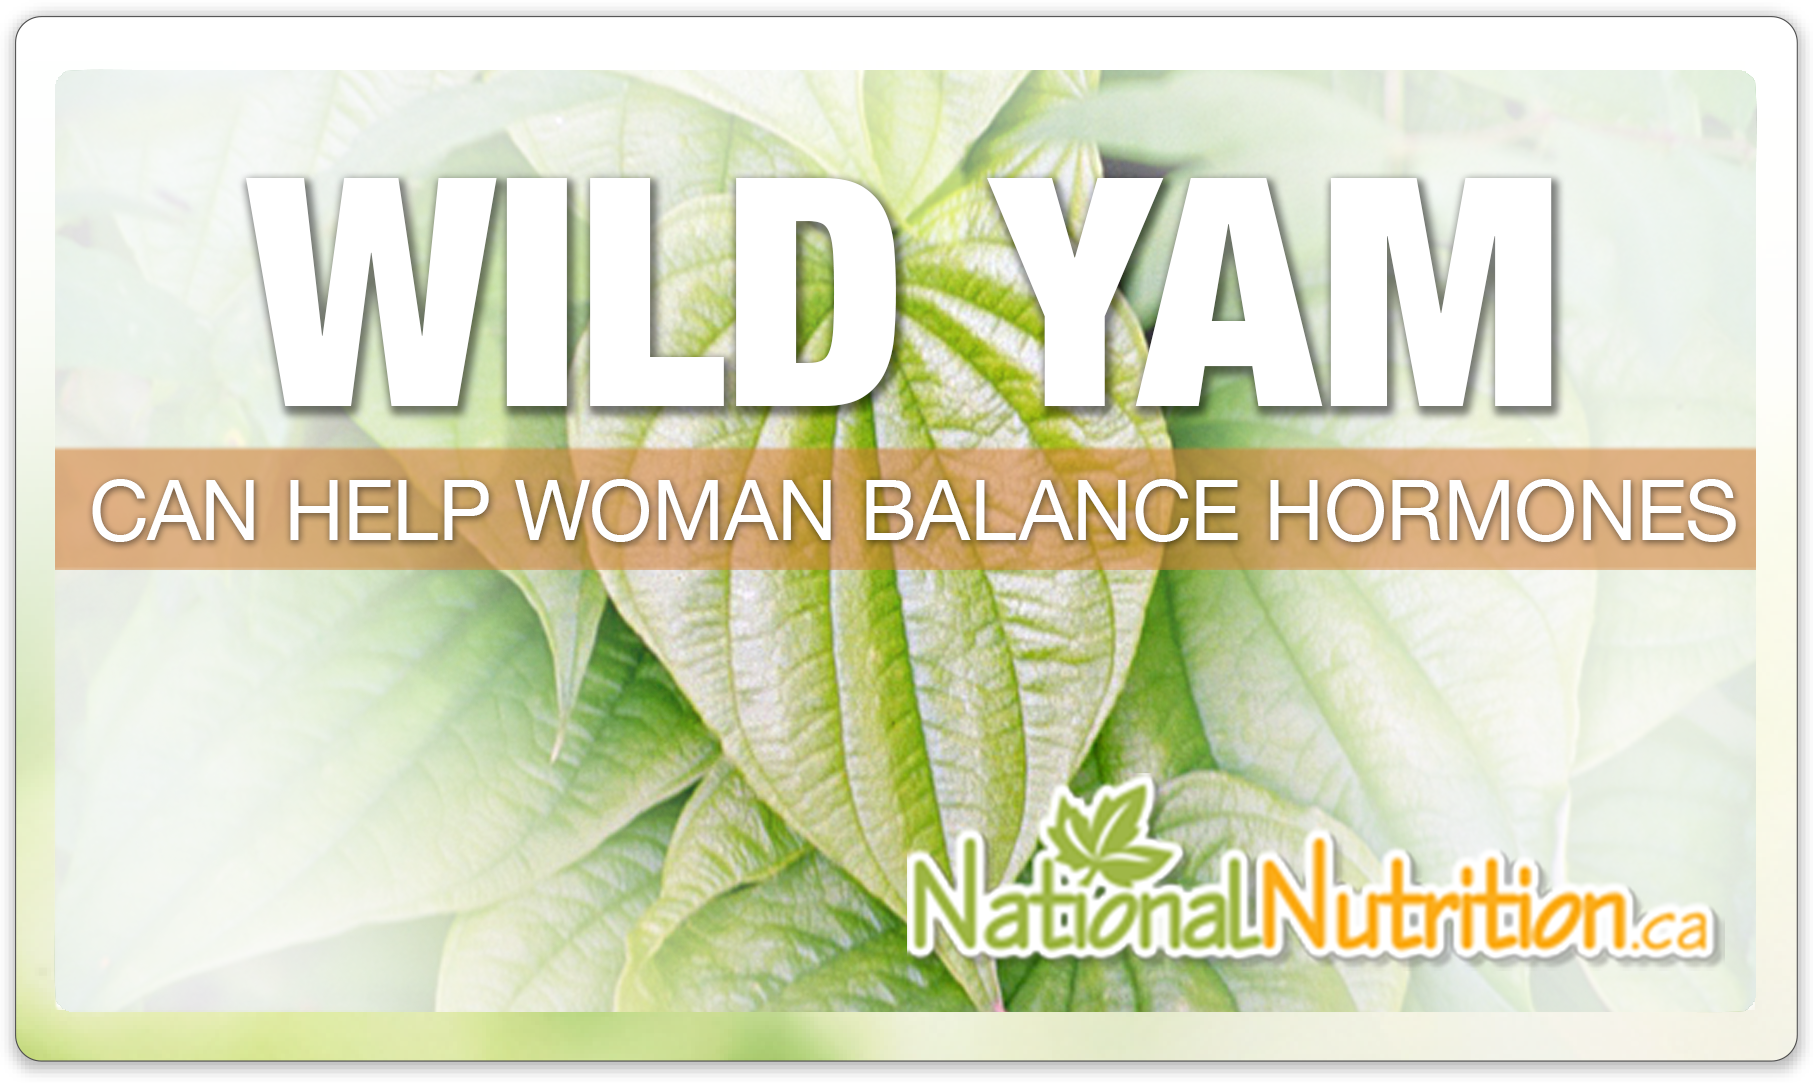 Wild Yam - National Nutrition Articles